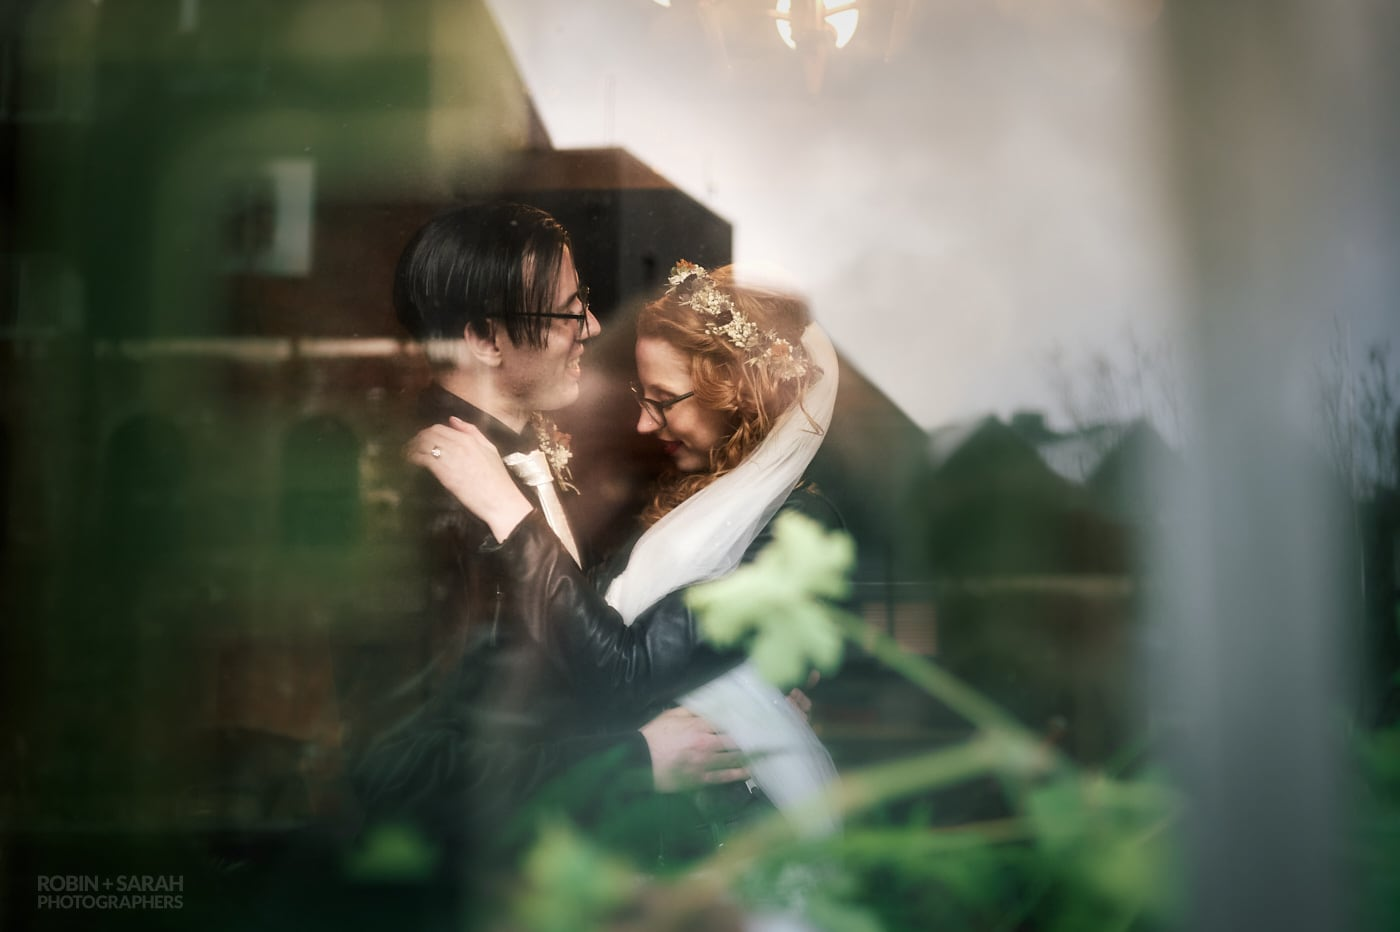 View through window of bride and groom hugging at The Chimney House, with reflects of buildings